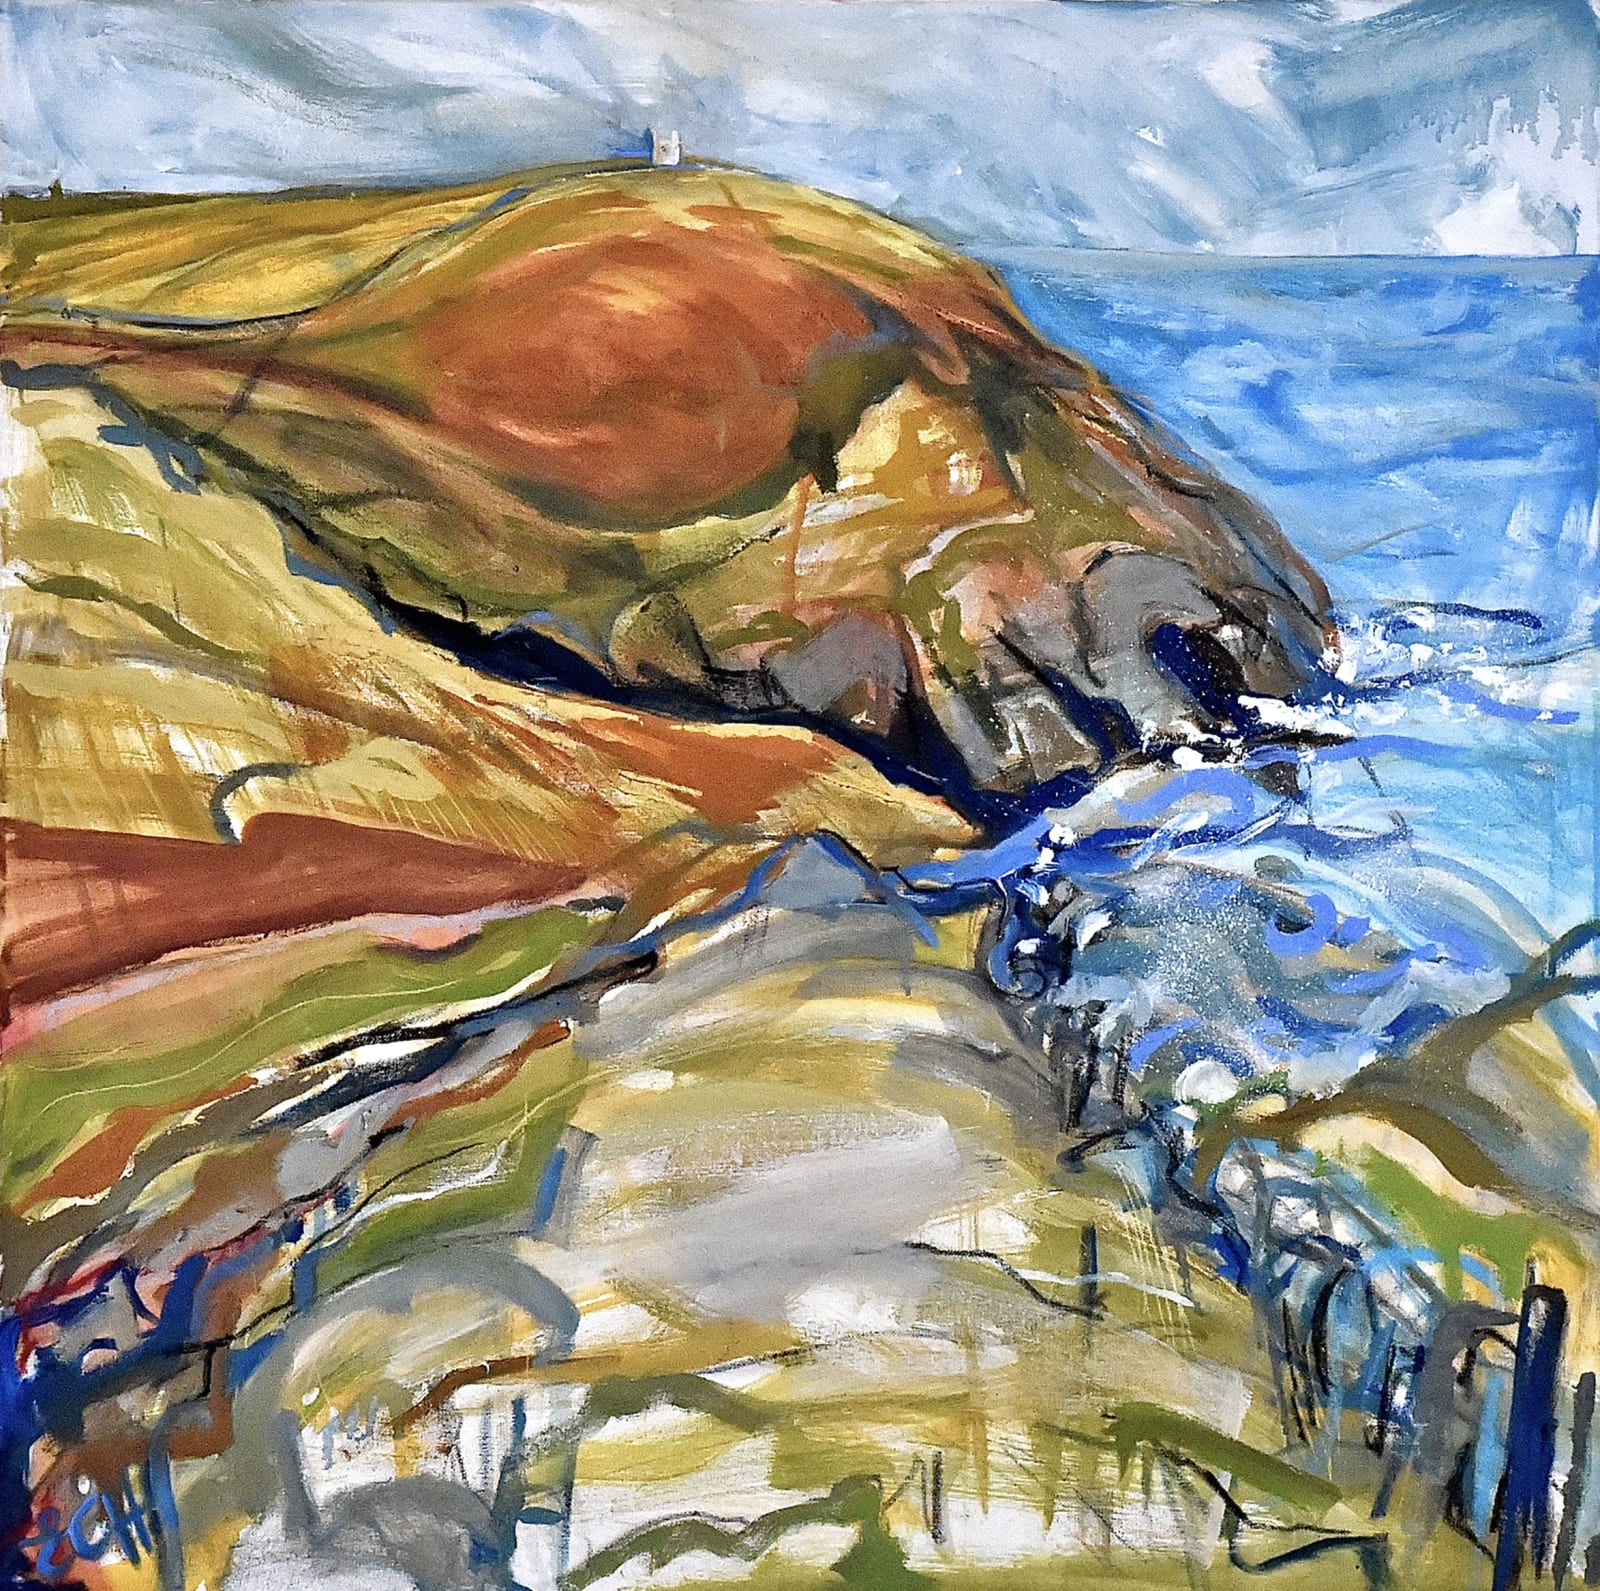 Emma Haggas, Cliffs at Boscastle, North Cornwall